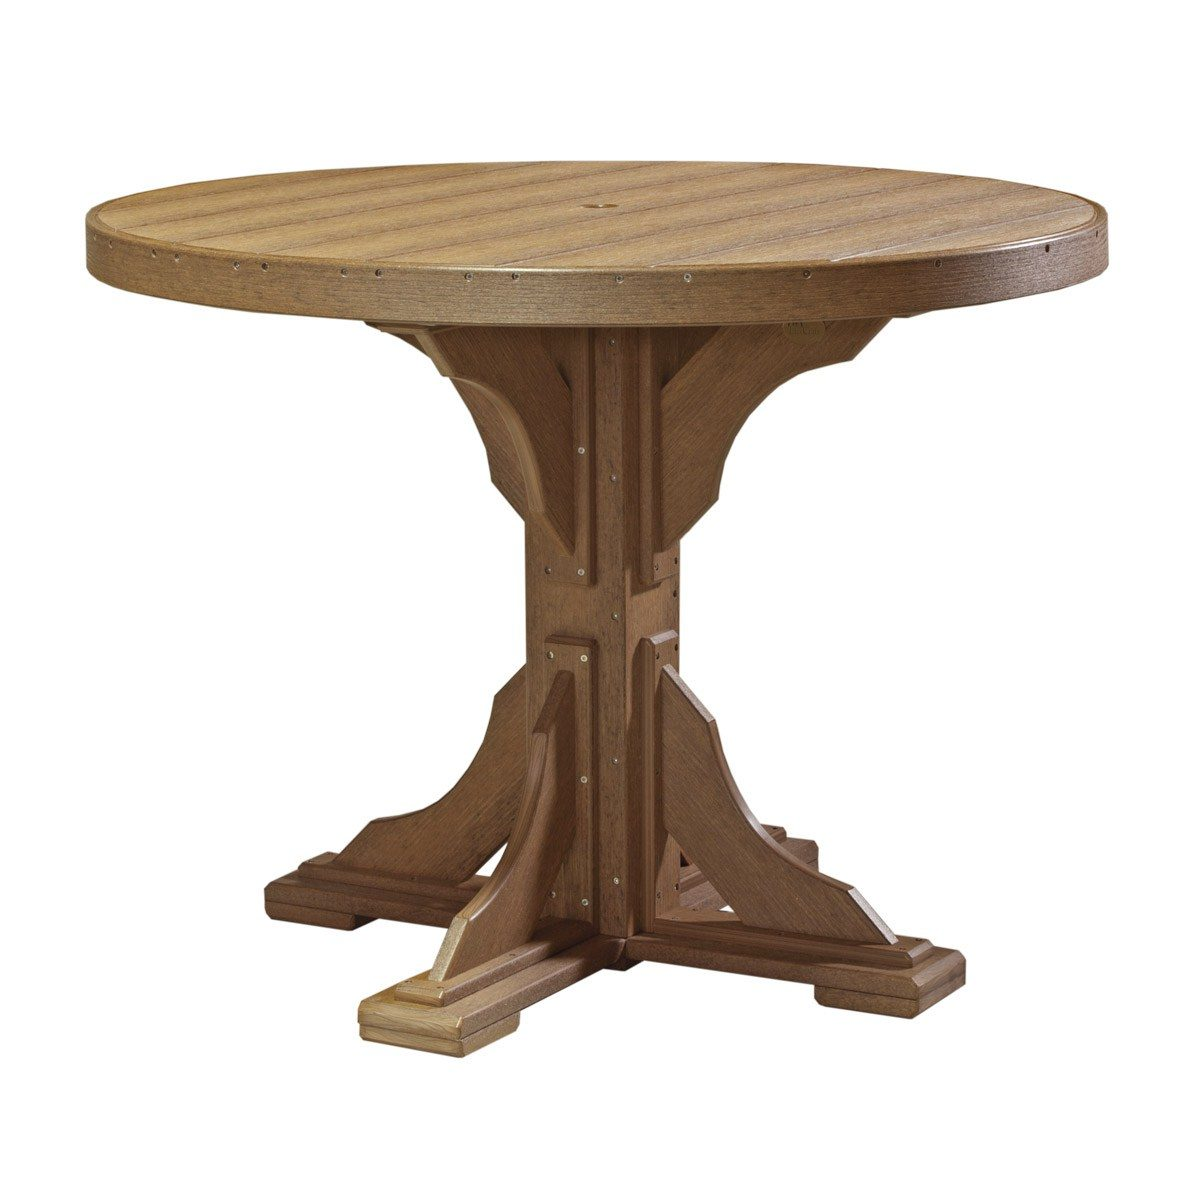 Round Counter Table (Dining Height Shown) - Antique Mahogany